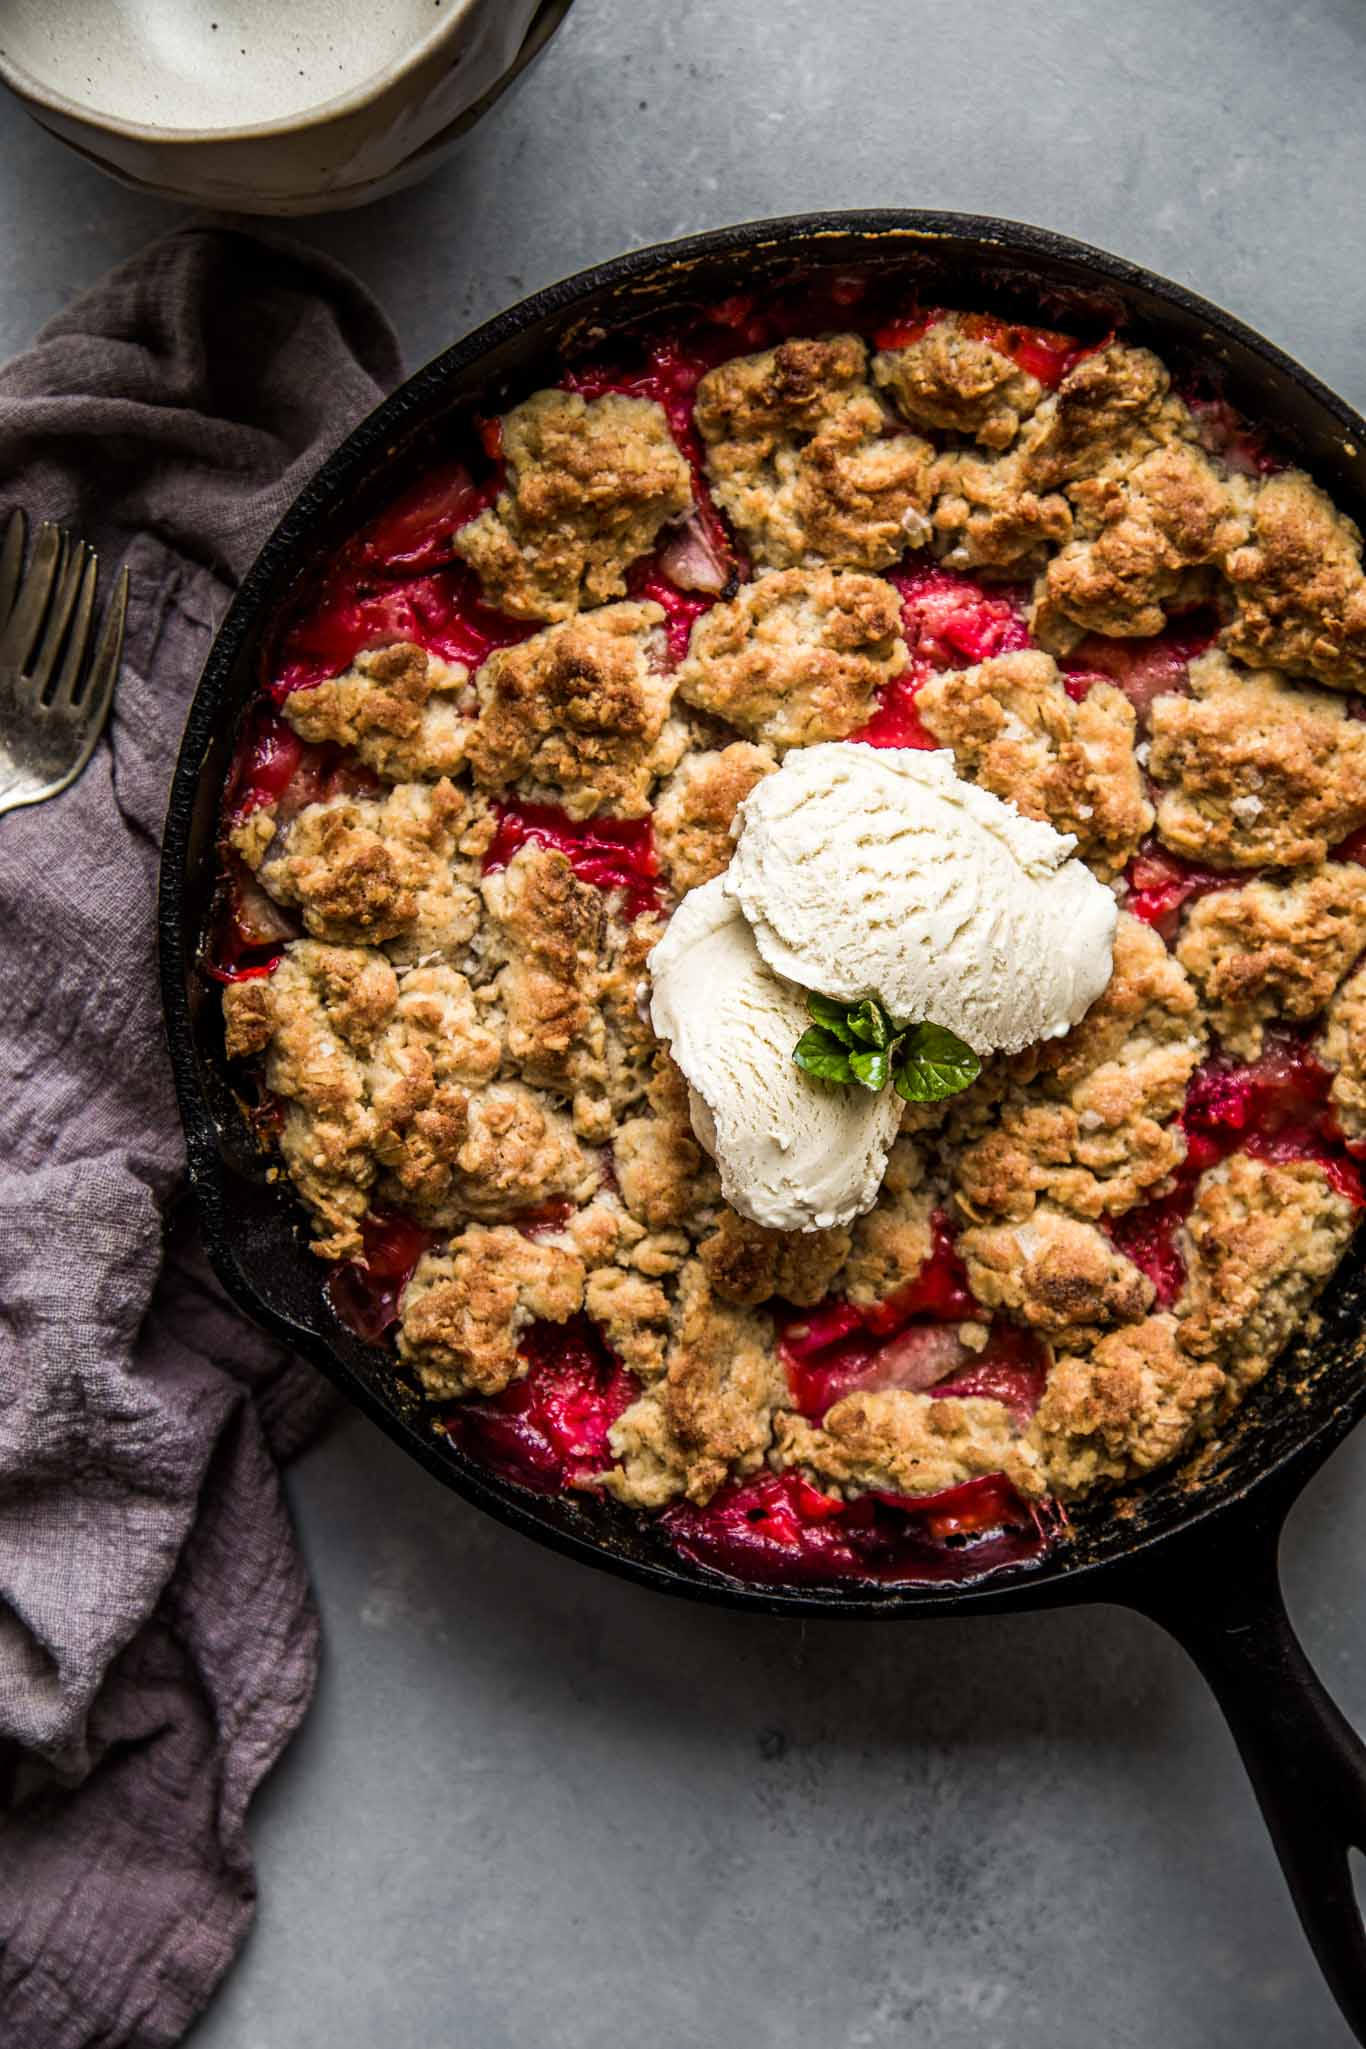 Strawberry Rhubarb Skillet Cobbler topped in cast iron skillet topped with vanilla ice cream.